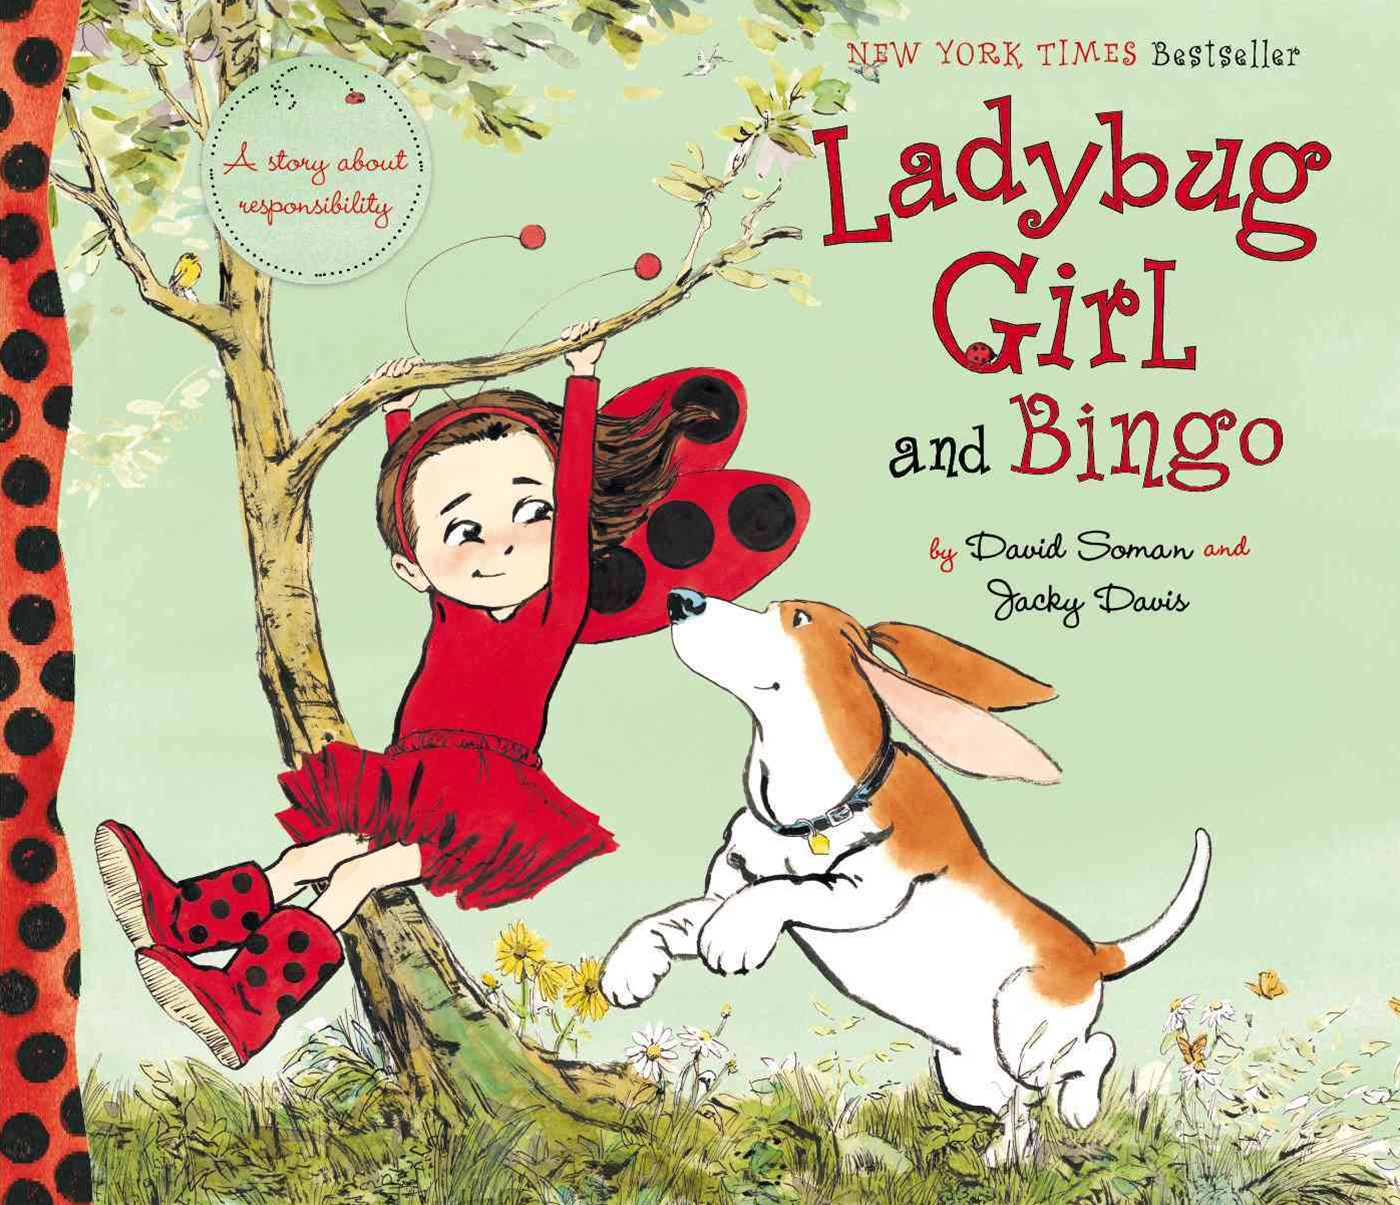 Ladybug Girl and Bingo